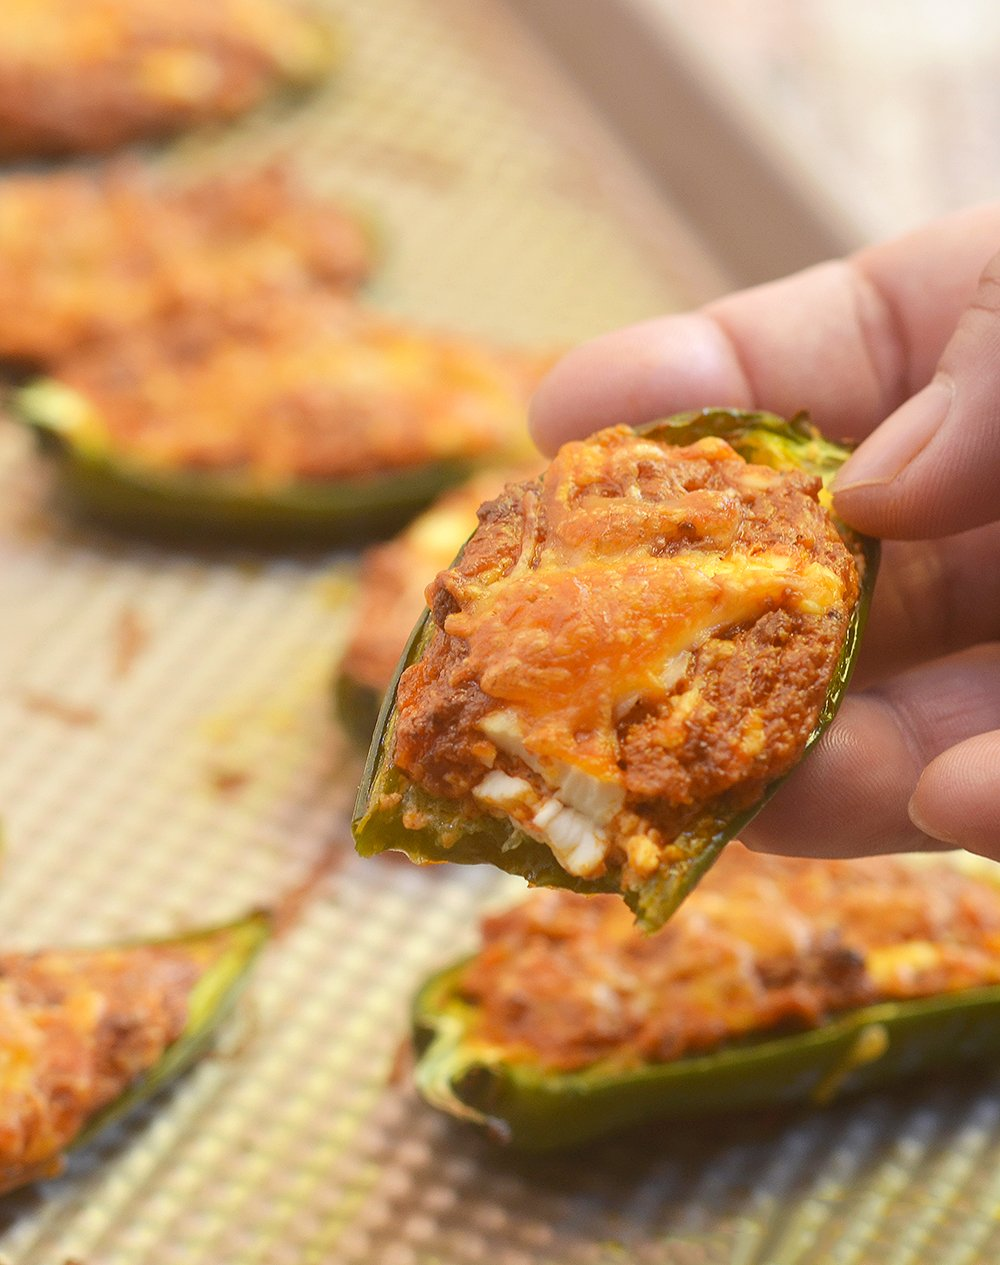 Mexican-style Jalapeno Poppers filled with crumbled chorizo, cream cheese, and shredded cheddar. They're spicy, creamy, and absolutely addicting!